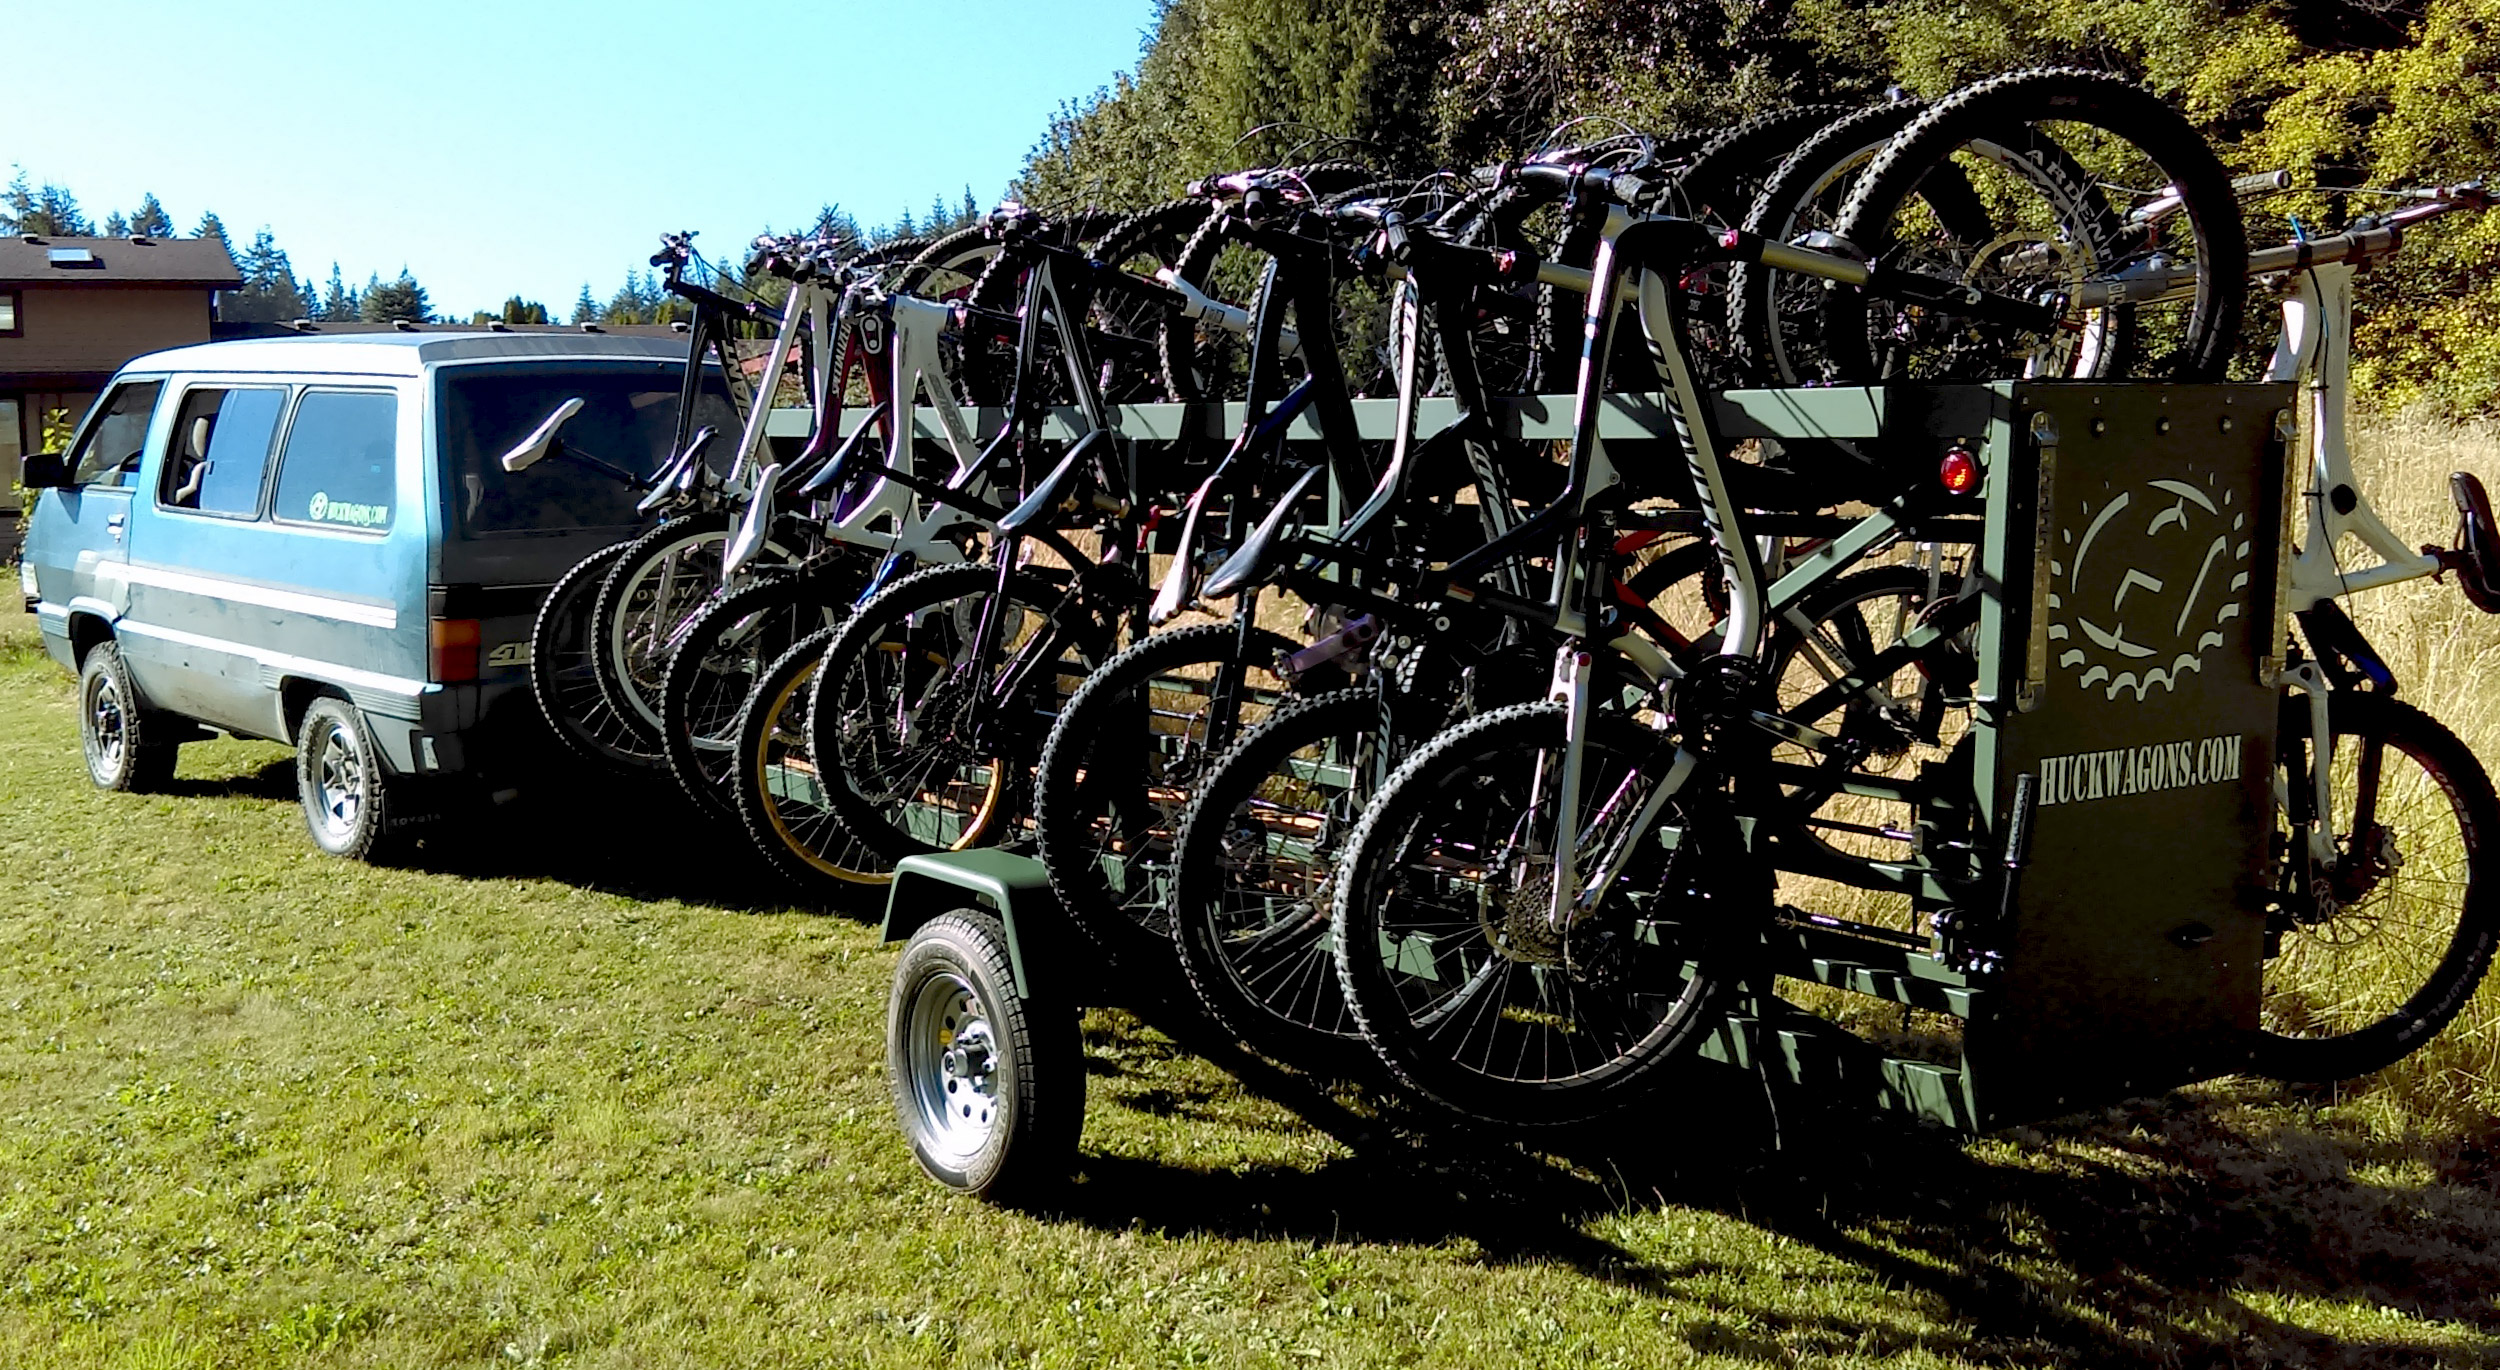 Huckwagons Mountain Bike Shuttle Trailers powder coated colors